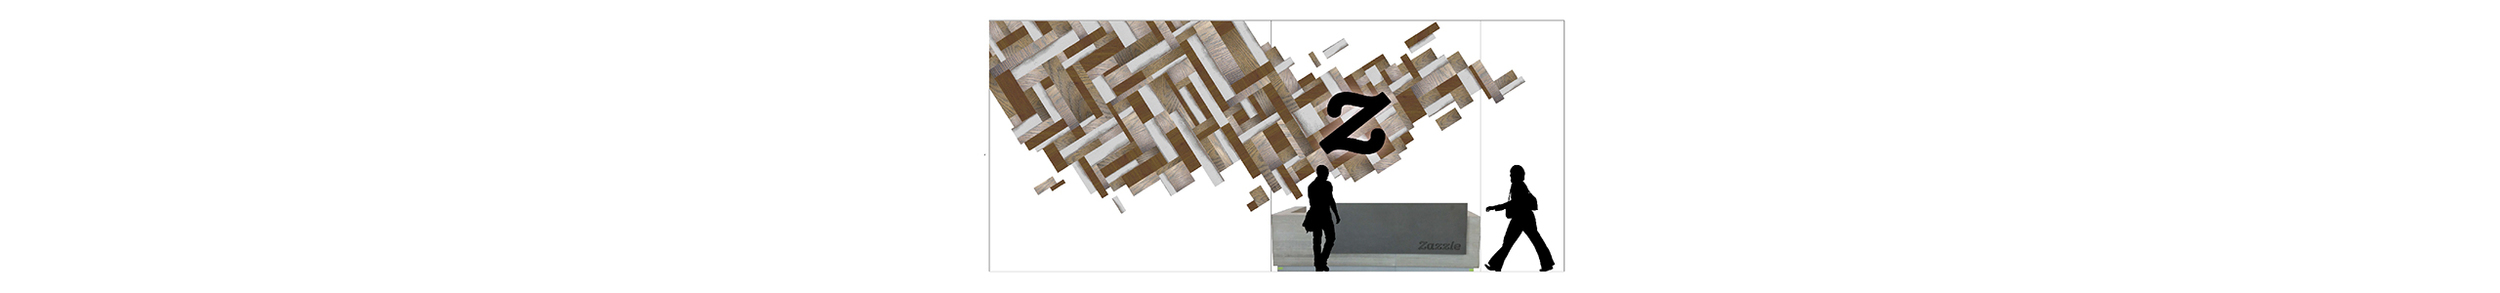 Proposed backlit wooden wall installation for Zazzle HQ 35'x15'